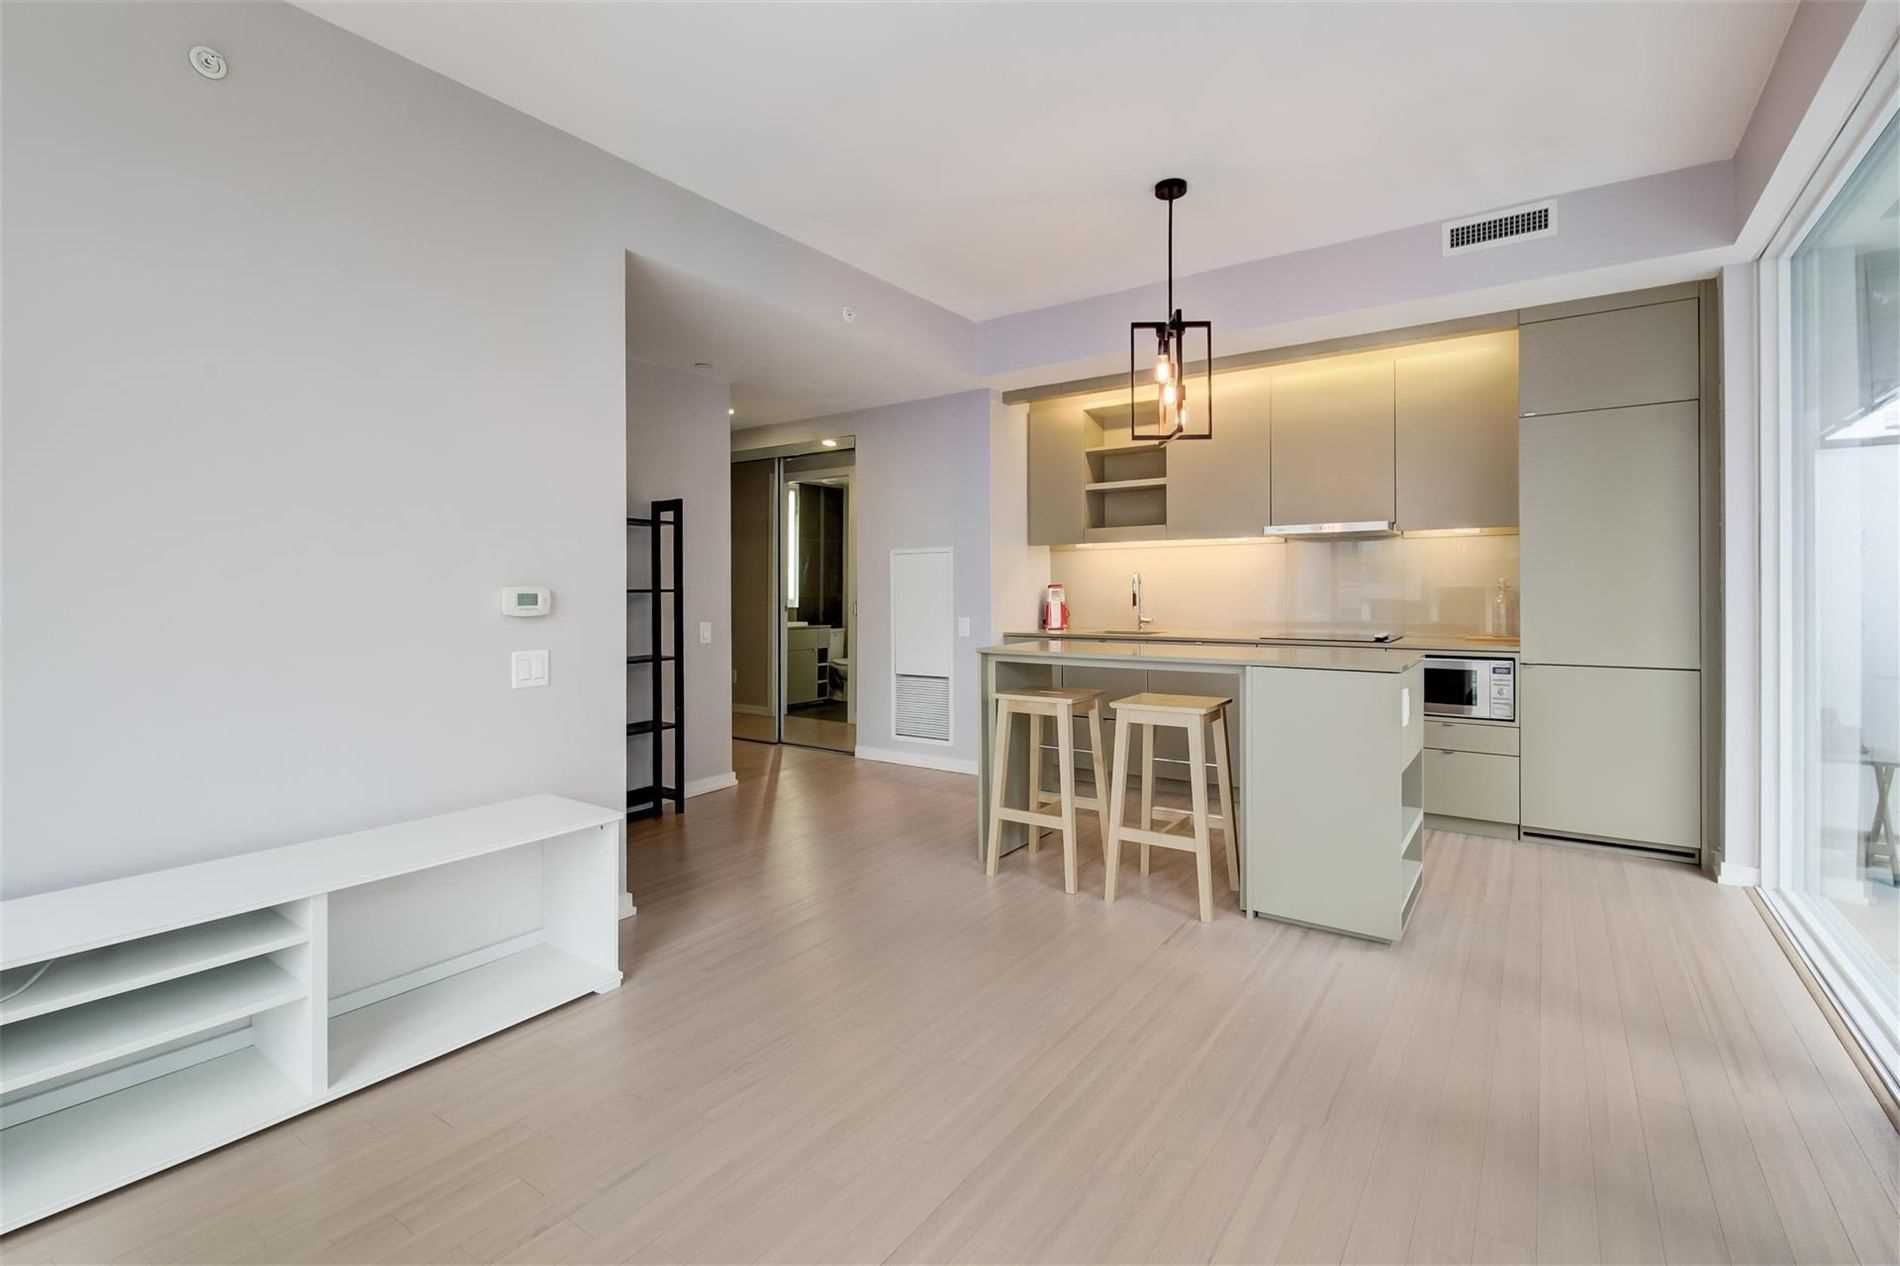 101 Peter St, unit 903 for rent in Toronto - image #1